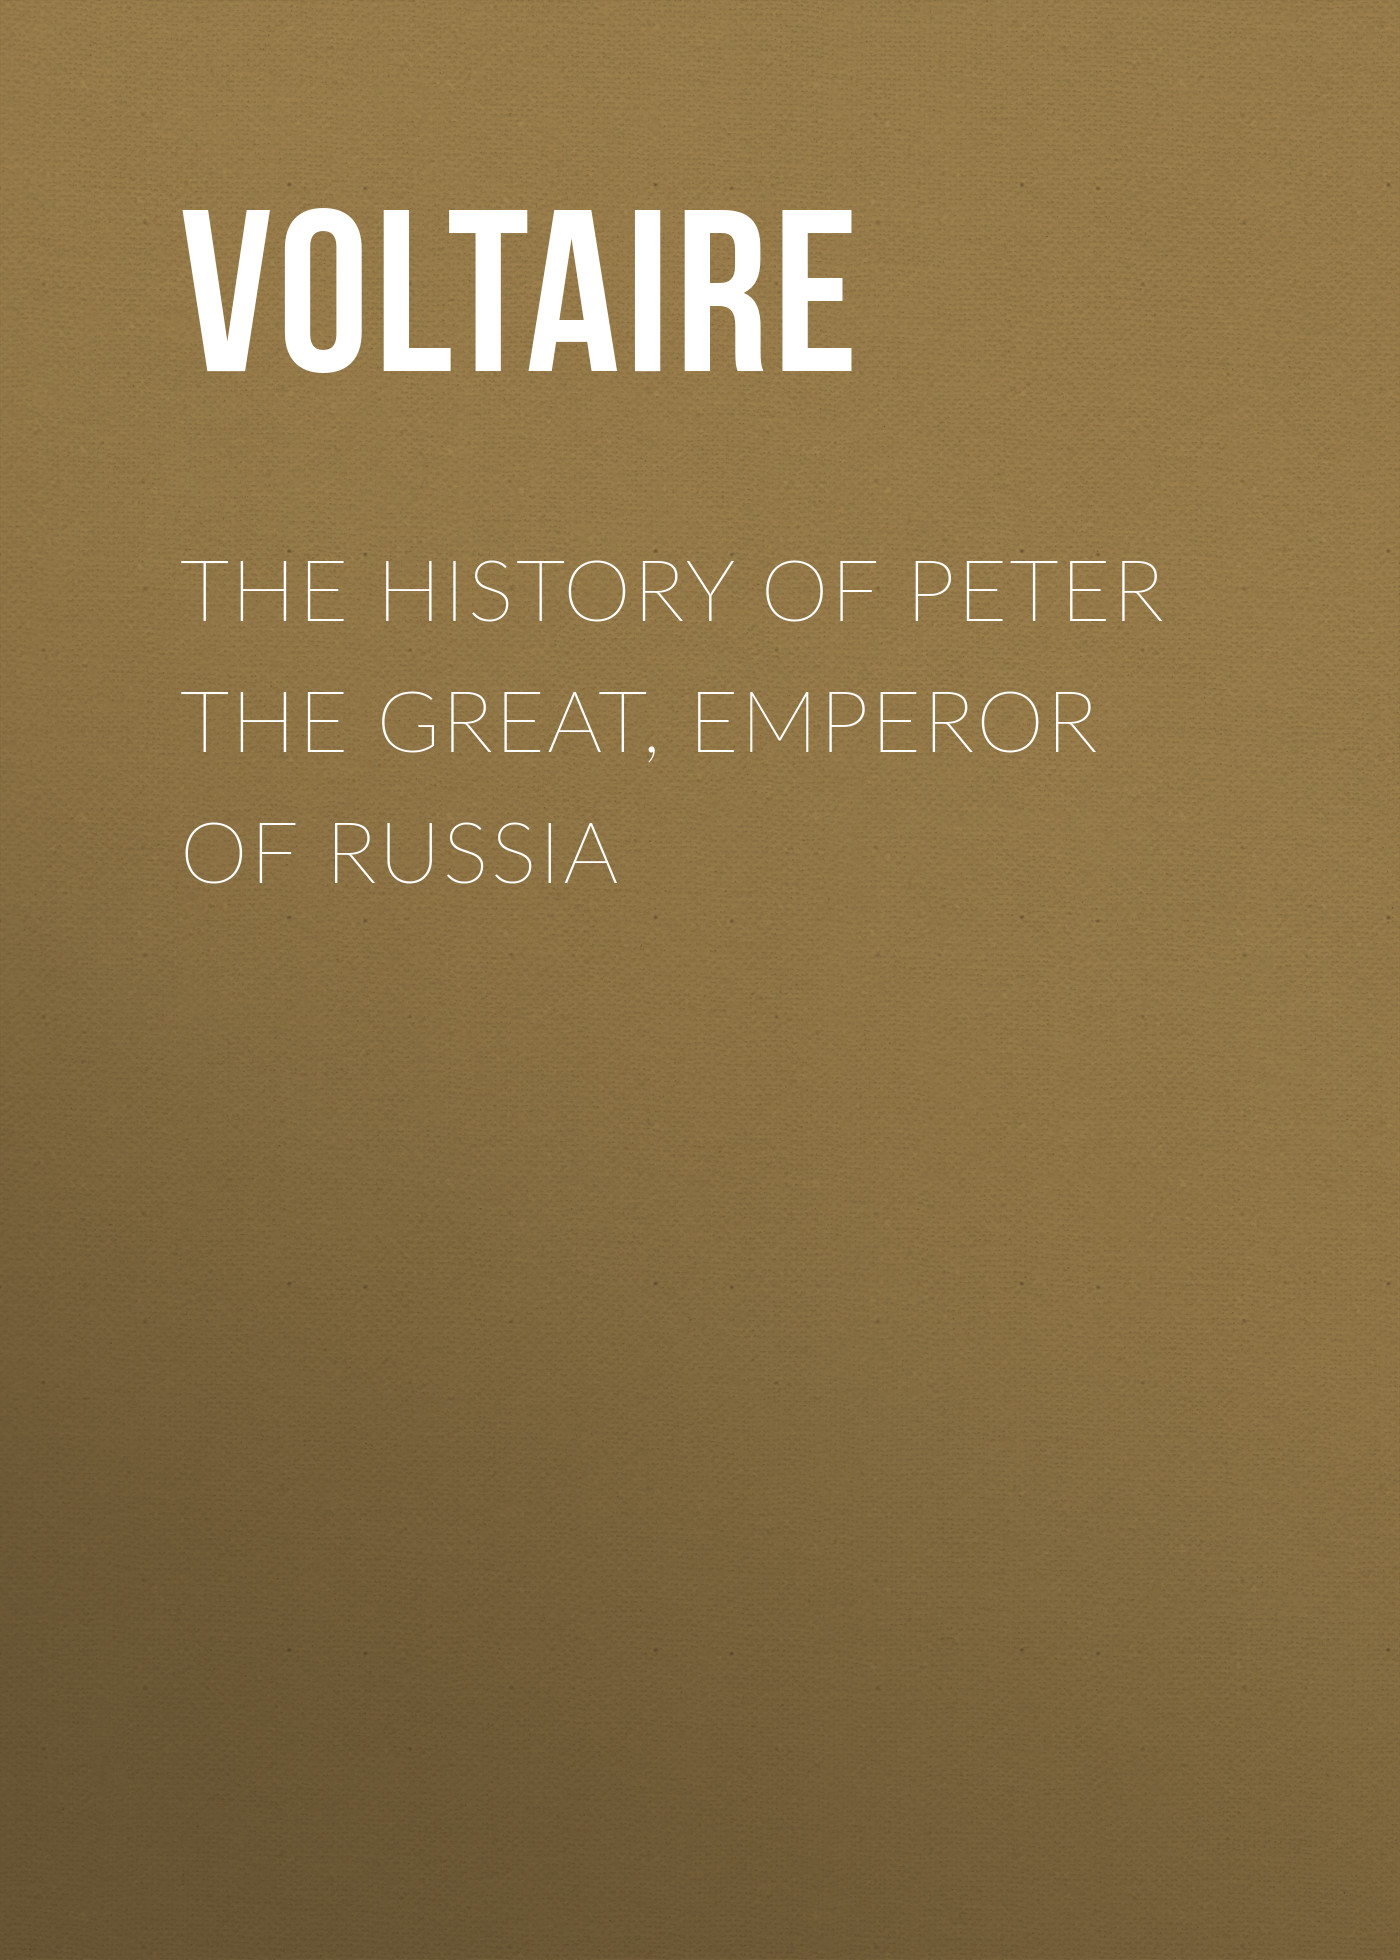 Вольтер The History of Peter the Great, Emperor of Russia отсутствует anecdotes hitherto unpublished of the private life of peter the great